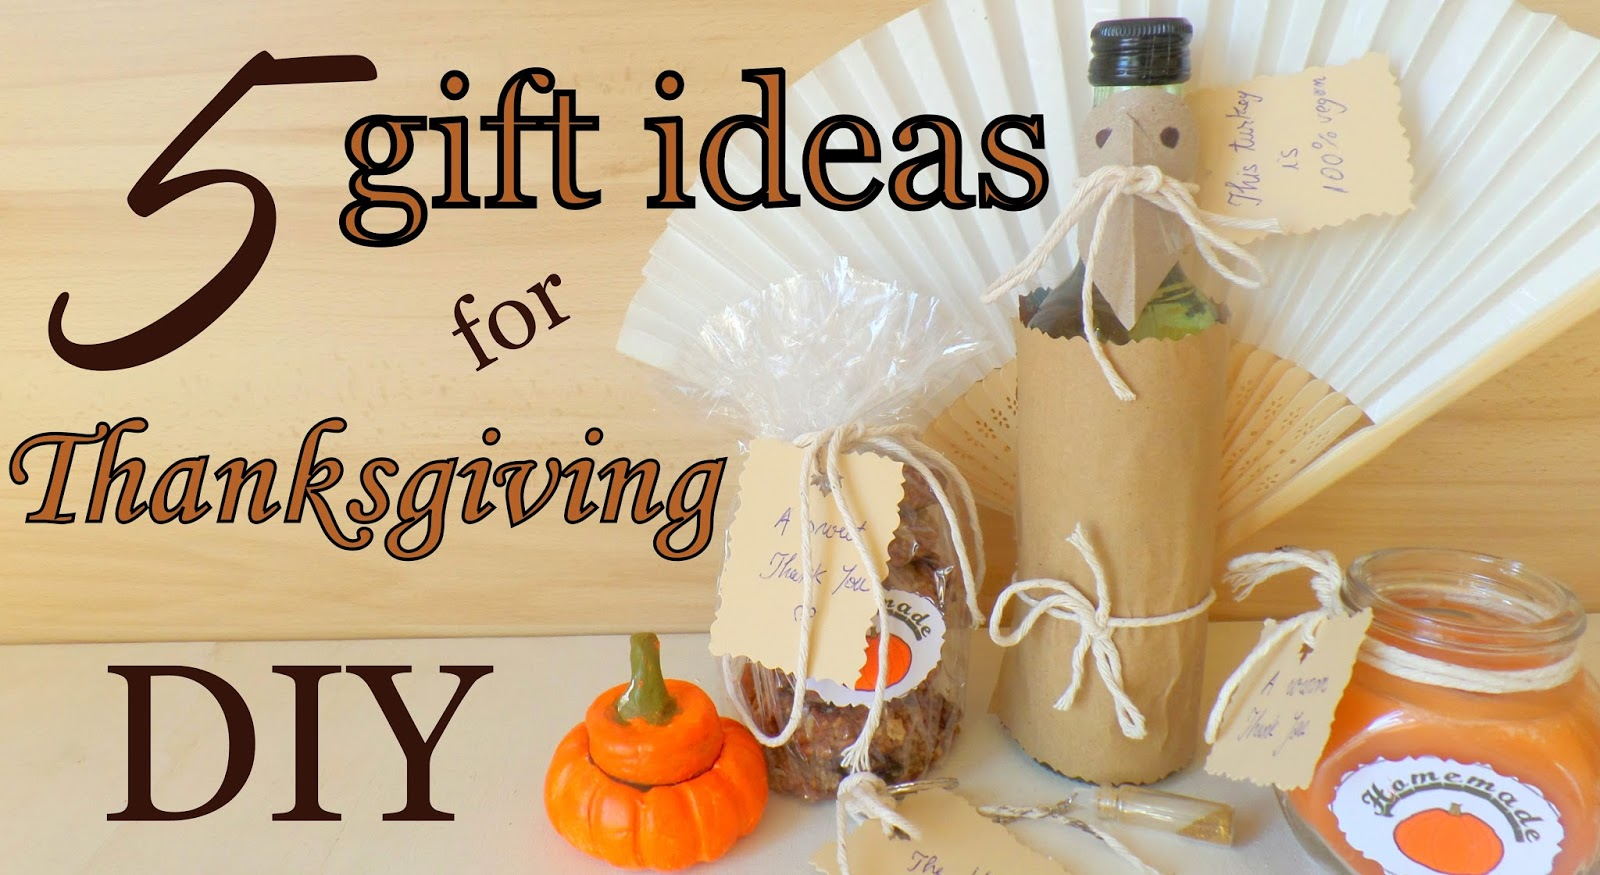 The Fluffy Hedgehog 5 Gift Ideas For Thanksgiving DIY